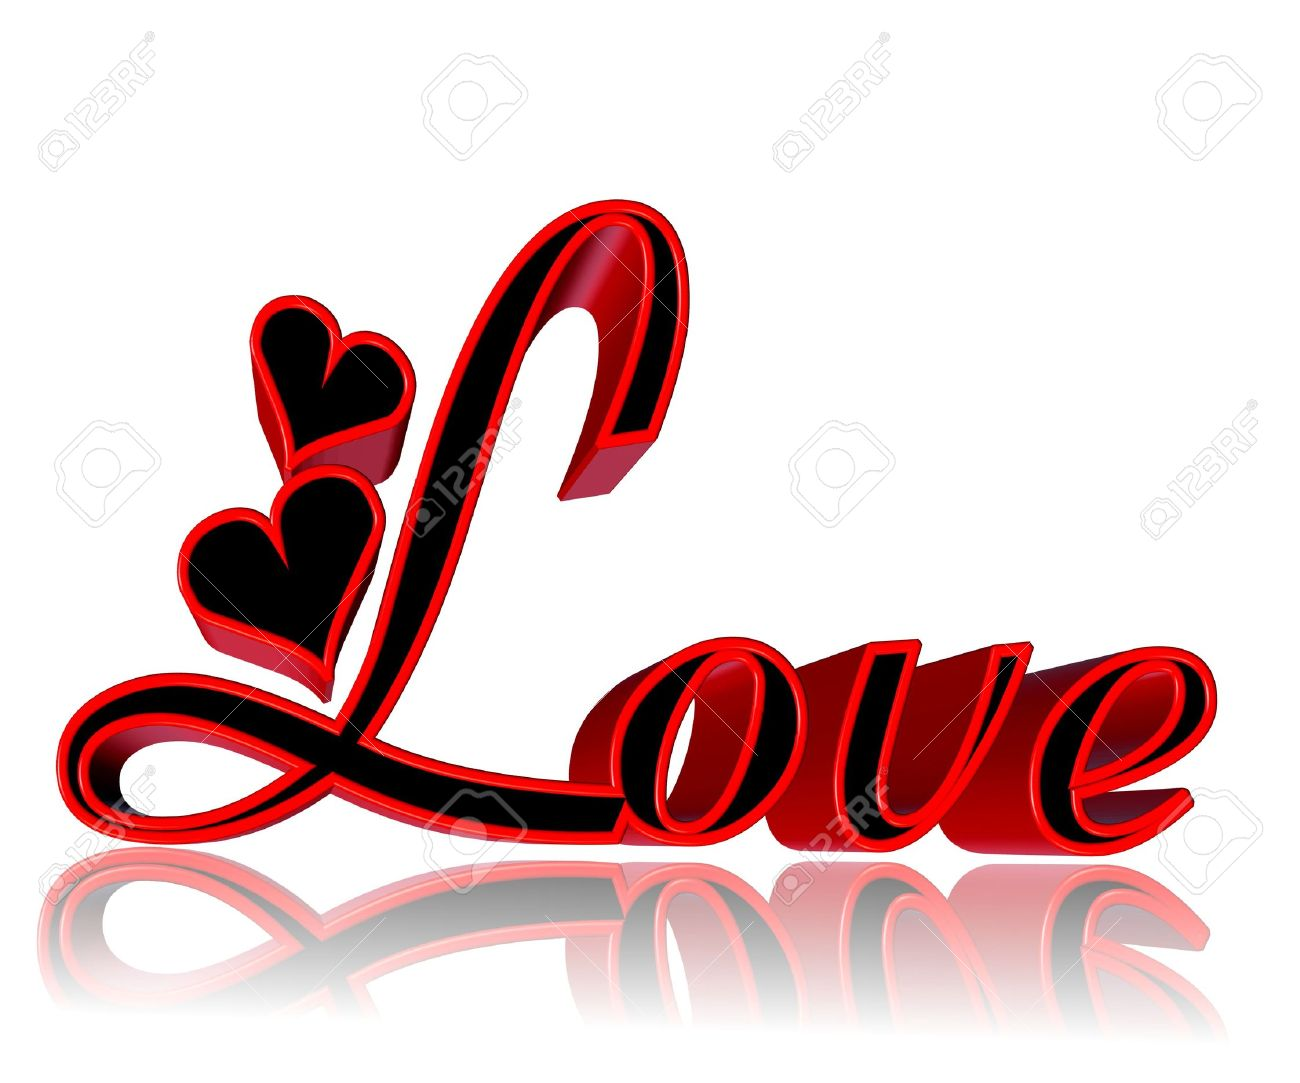 Black and white red hearts love clipart royalty free download 3d Word Love With Hearts In Red And Black On White Background ... royalty free download